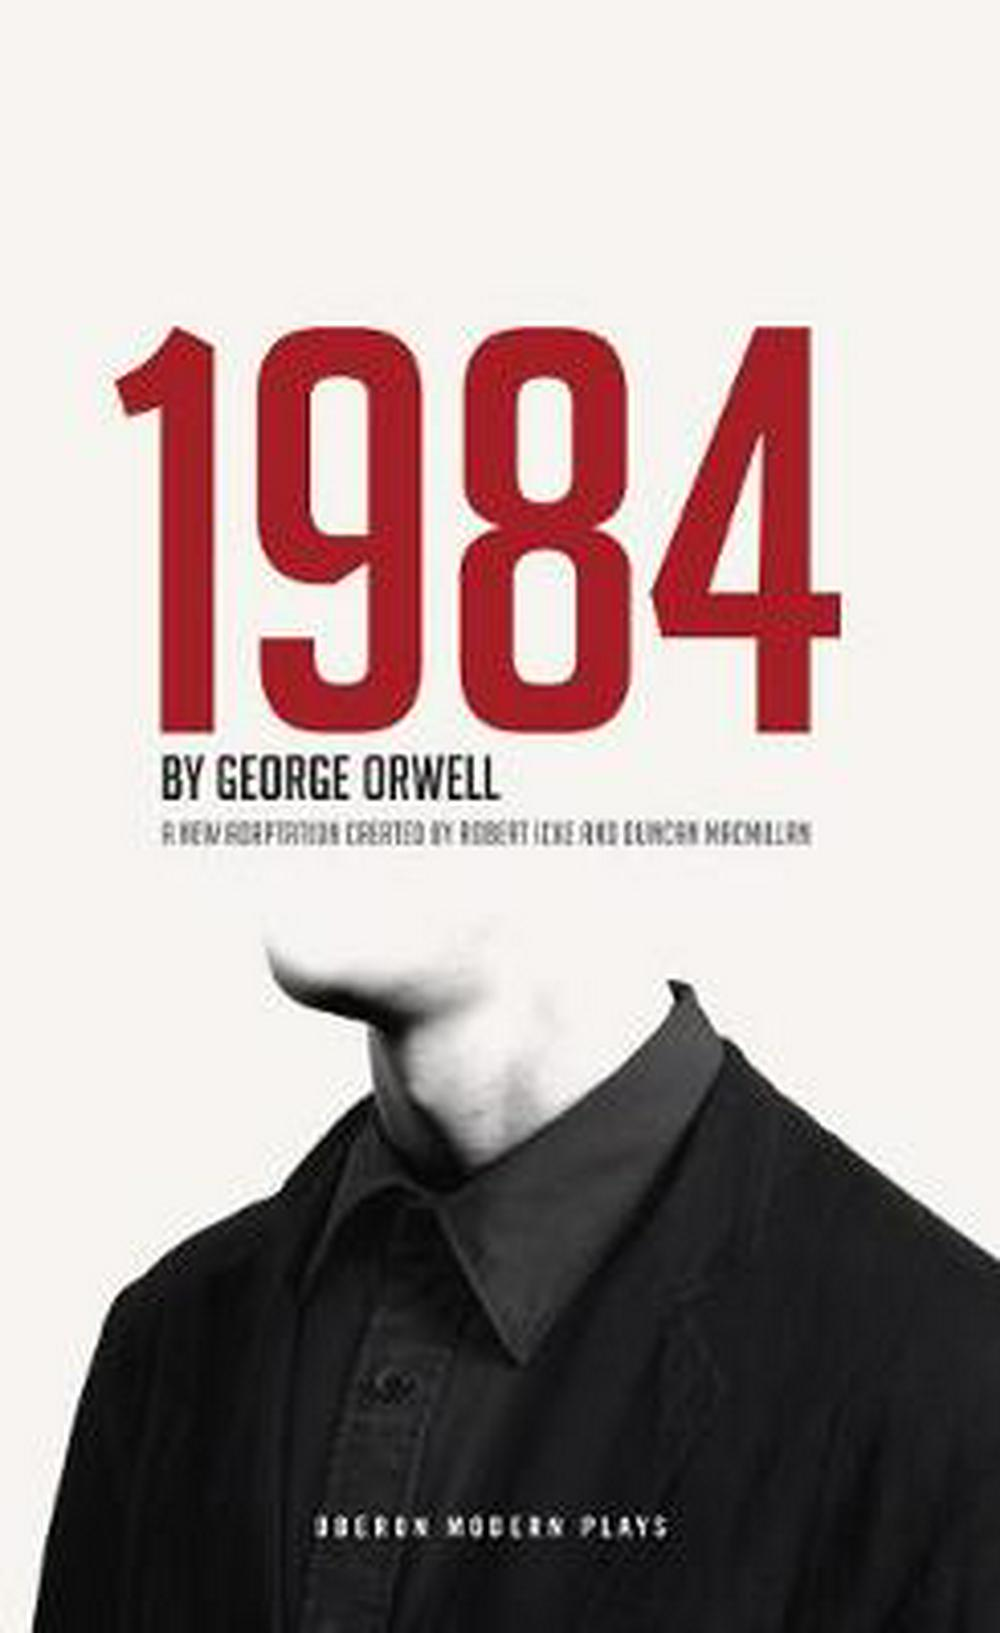 the good and bad of communist society as portrayed in nineteen eighty four by george orwell According to nineteen eighty-four by george orwell, doublethink is:  especially true of fundamentally important words such as good and evil, right and wrong, truth and falsehood, and justice and injustice  since 1949 (when nineteen eighty-four was published).